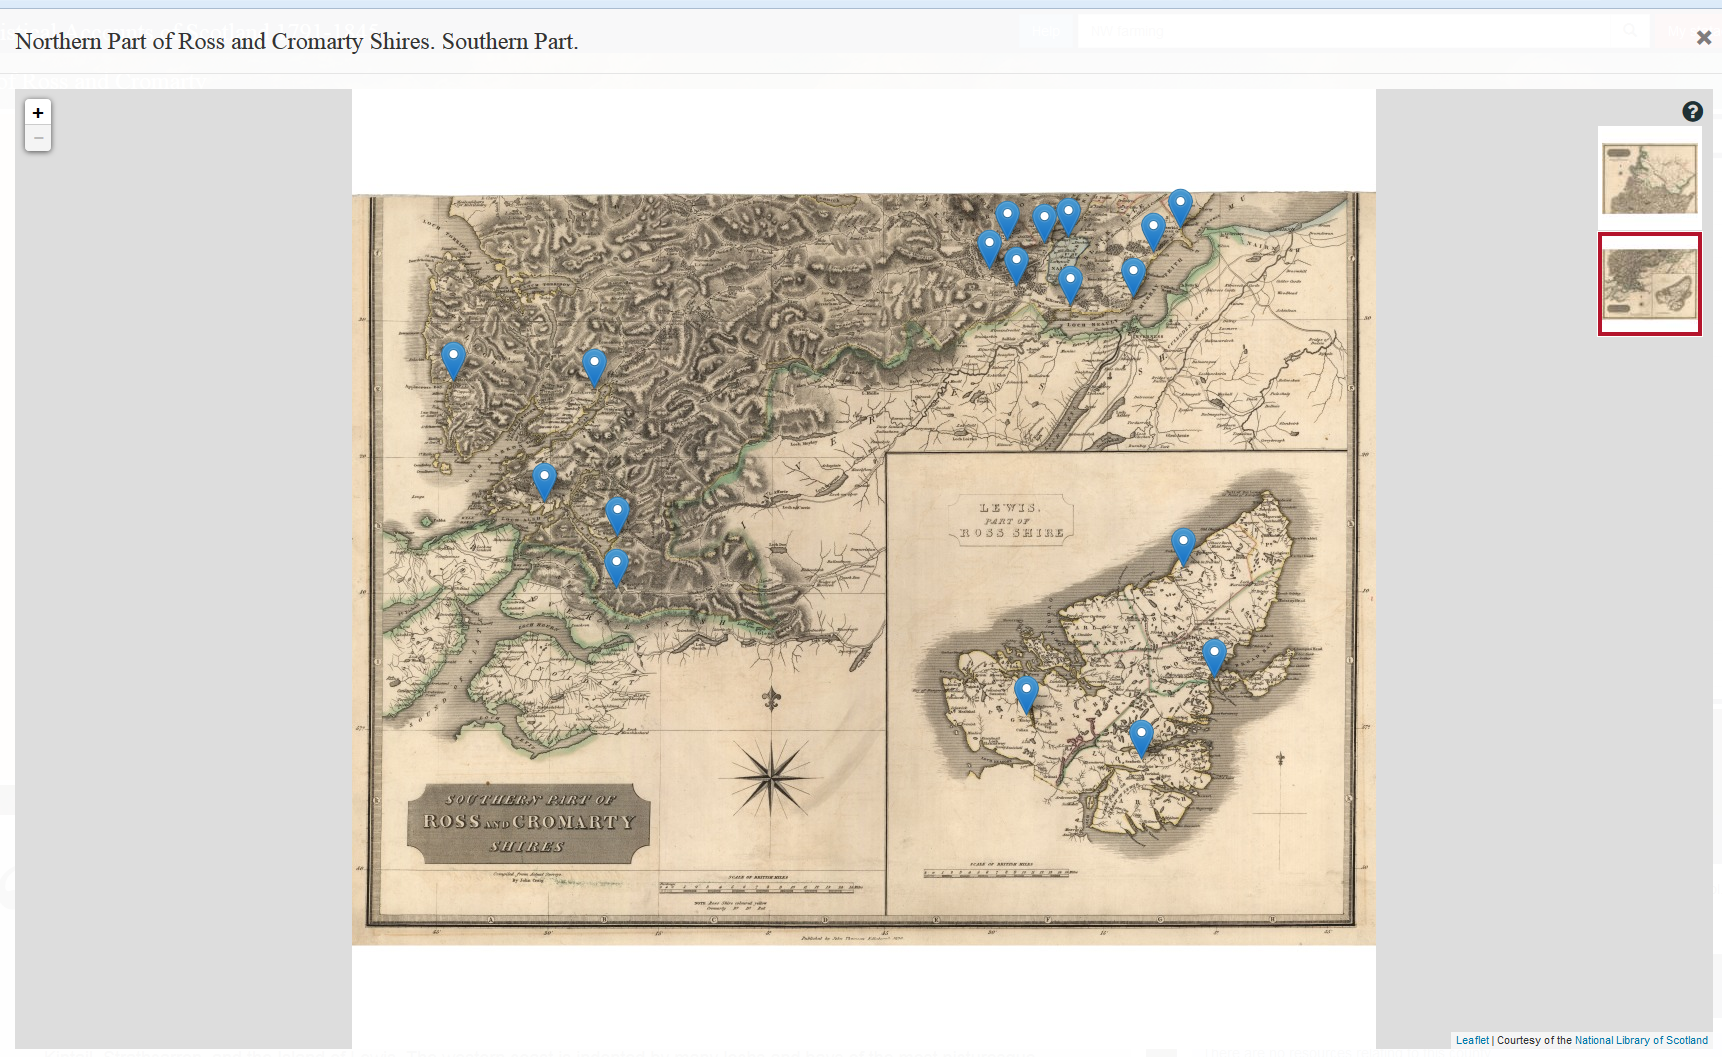 A screen-shot of an interactive map for the southern part of Northern Part of Ross and Cromarty Shires, taken from the Statistical Accounts of Scotland.